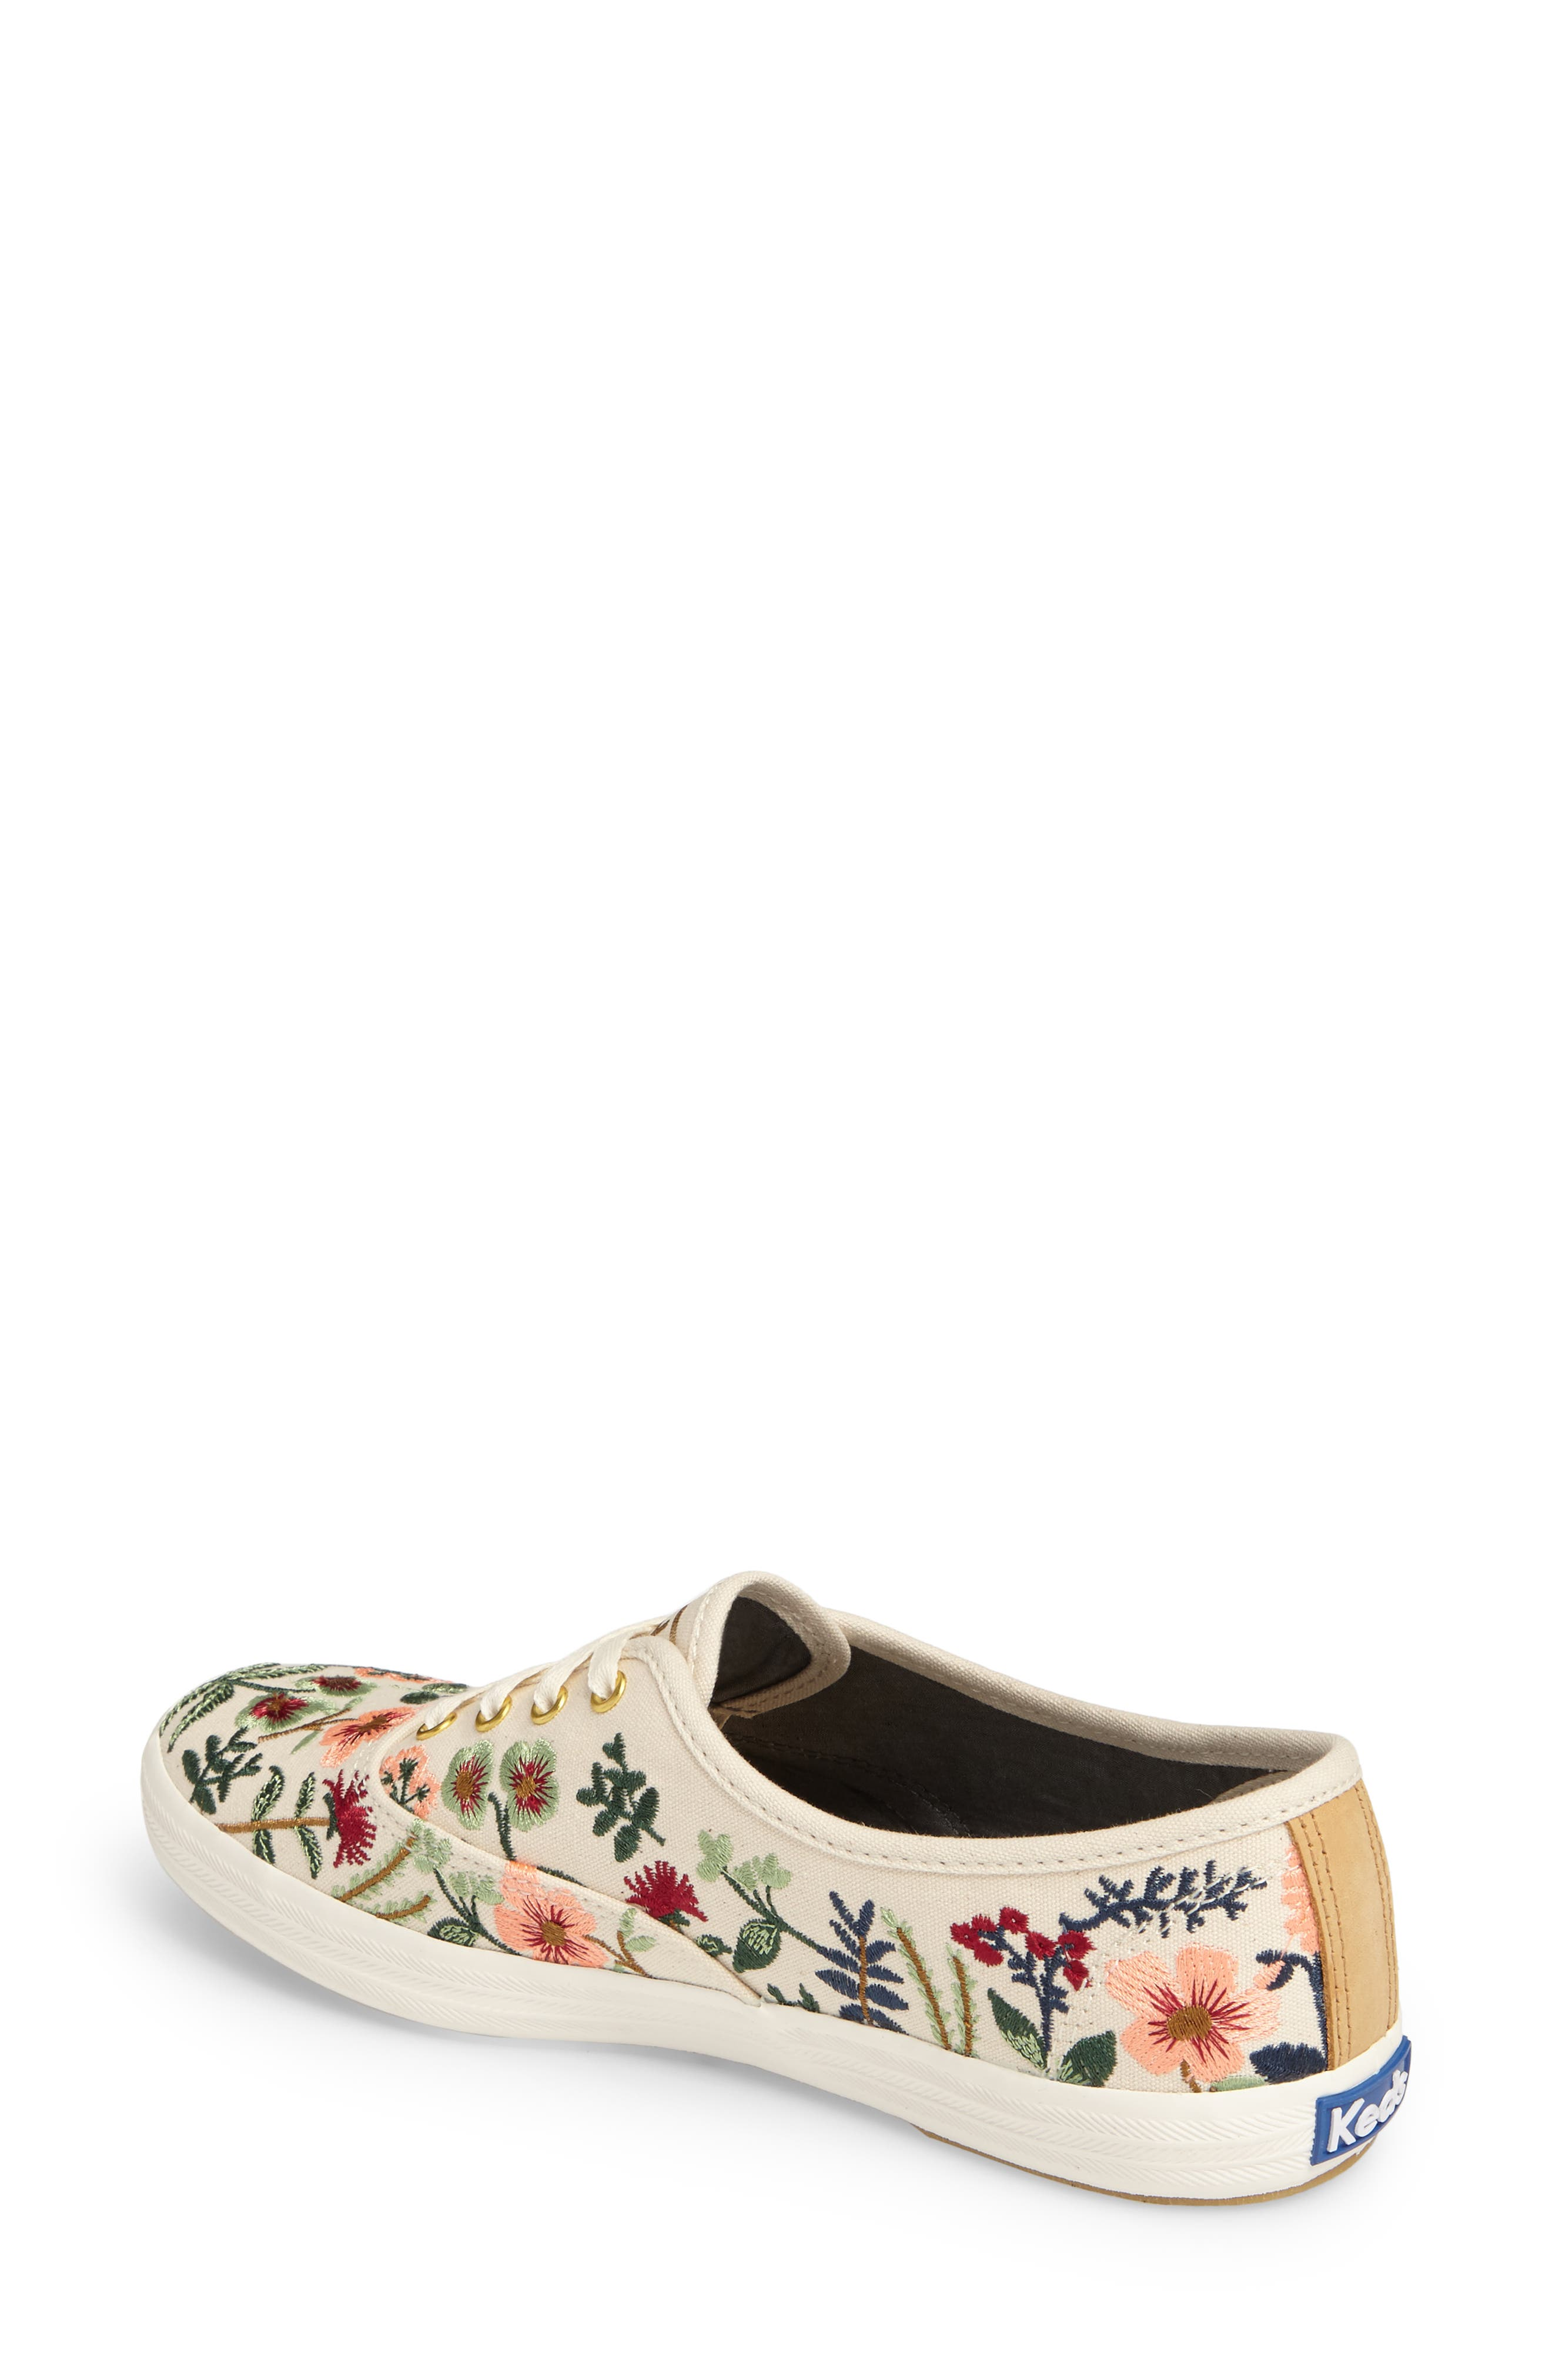 x Rifle Paper Co. Herb Garden Embroidered Sneaker,                             Alternate thumbnail 2, color,                             101